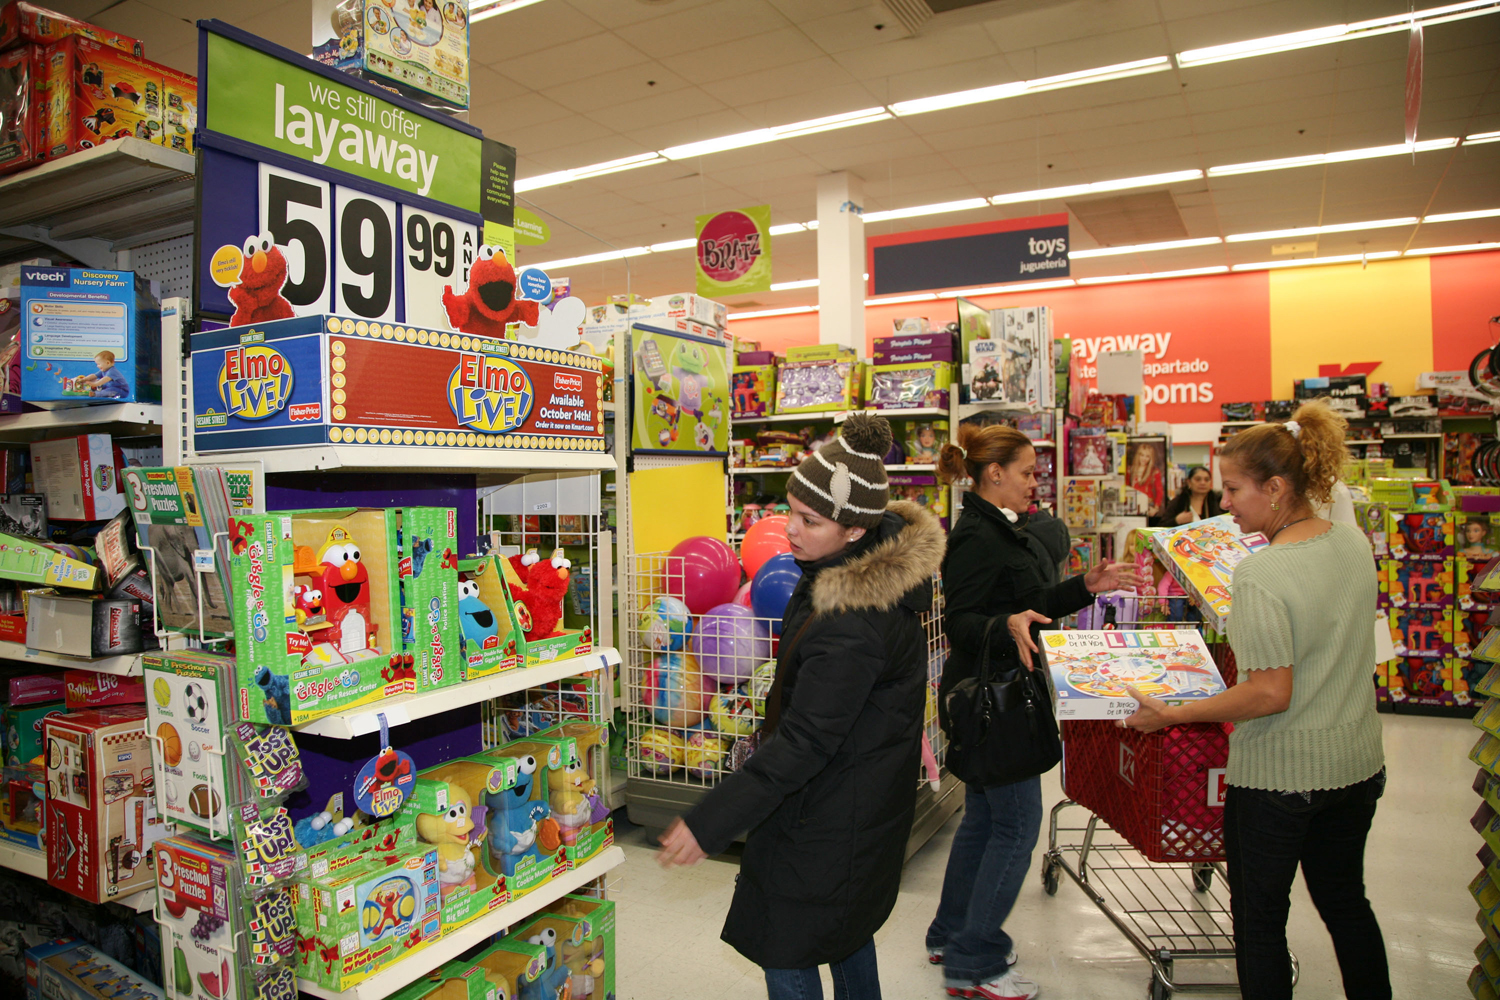 Shopping Tips for Kmart: 1. Earn rewards at Kmart, MyGofer, Lands' End, Sears, Kenmore and Craftsman by joining the Shop Your Way program. 2. Place pharmacy orders before noon on weekdays if you want prescriptions shipped from the pharmacy on the same day.